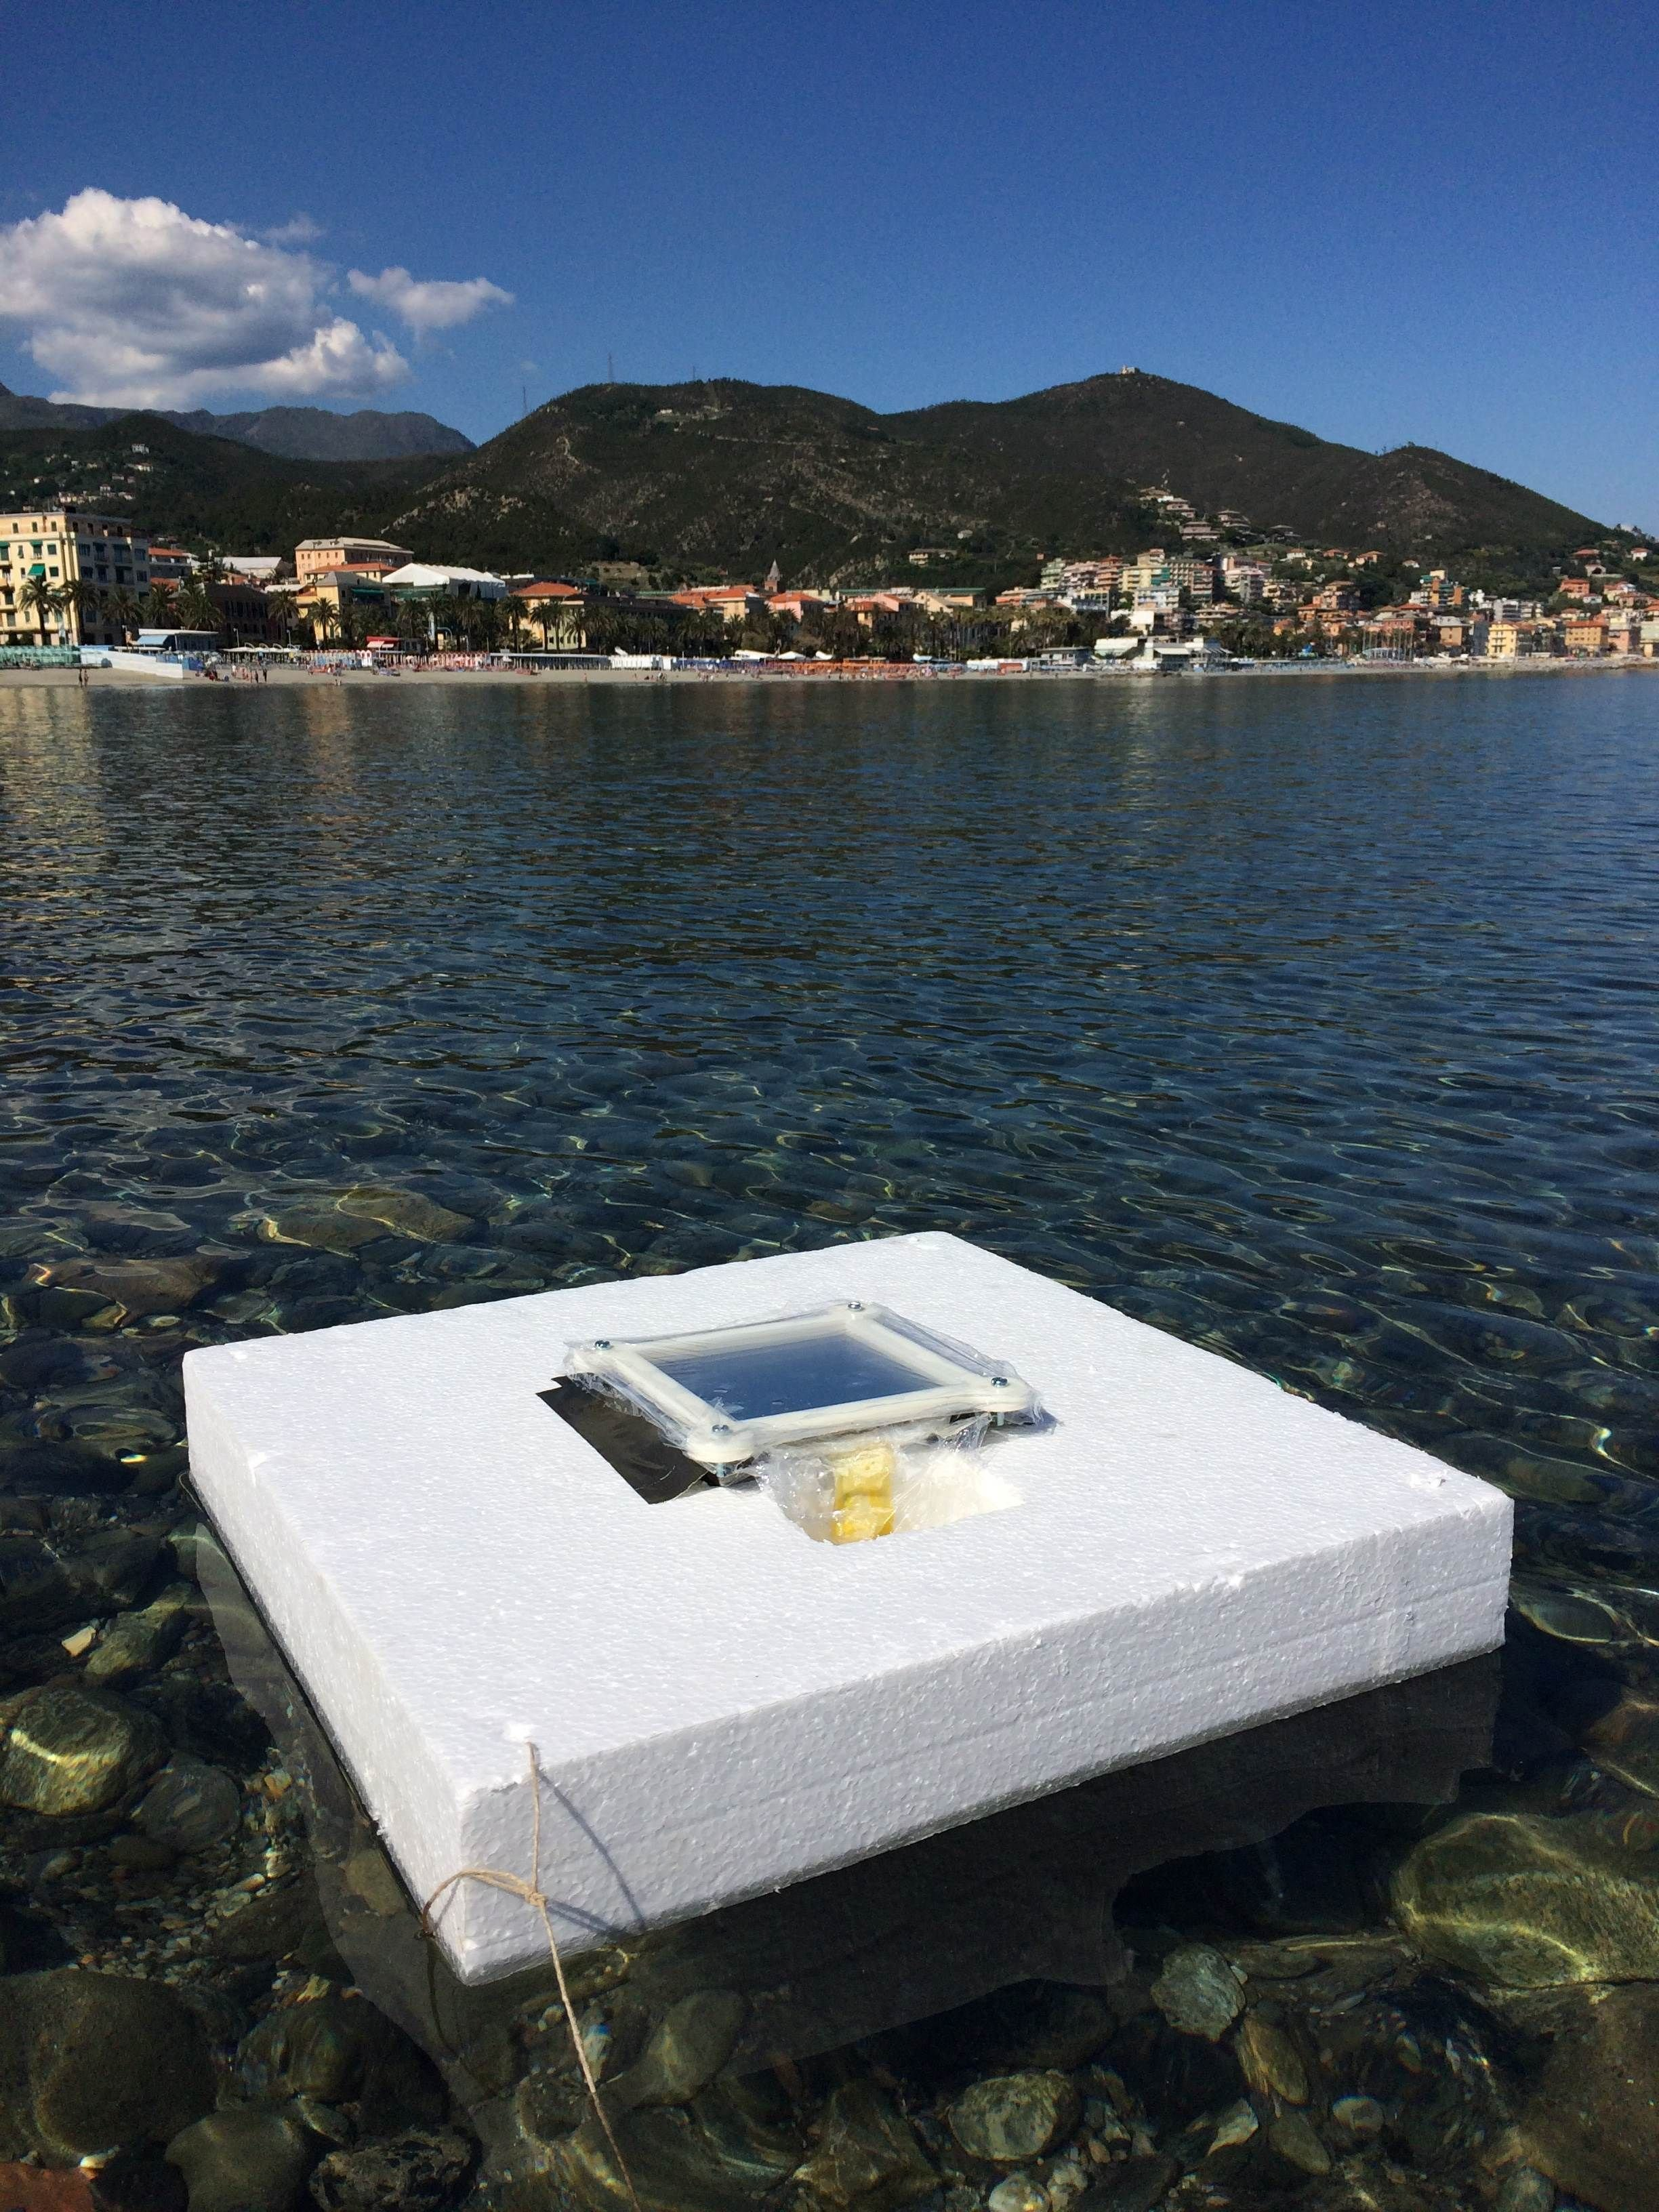 Seawater to freshwater through solar energy: A new low-cost technology